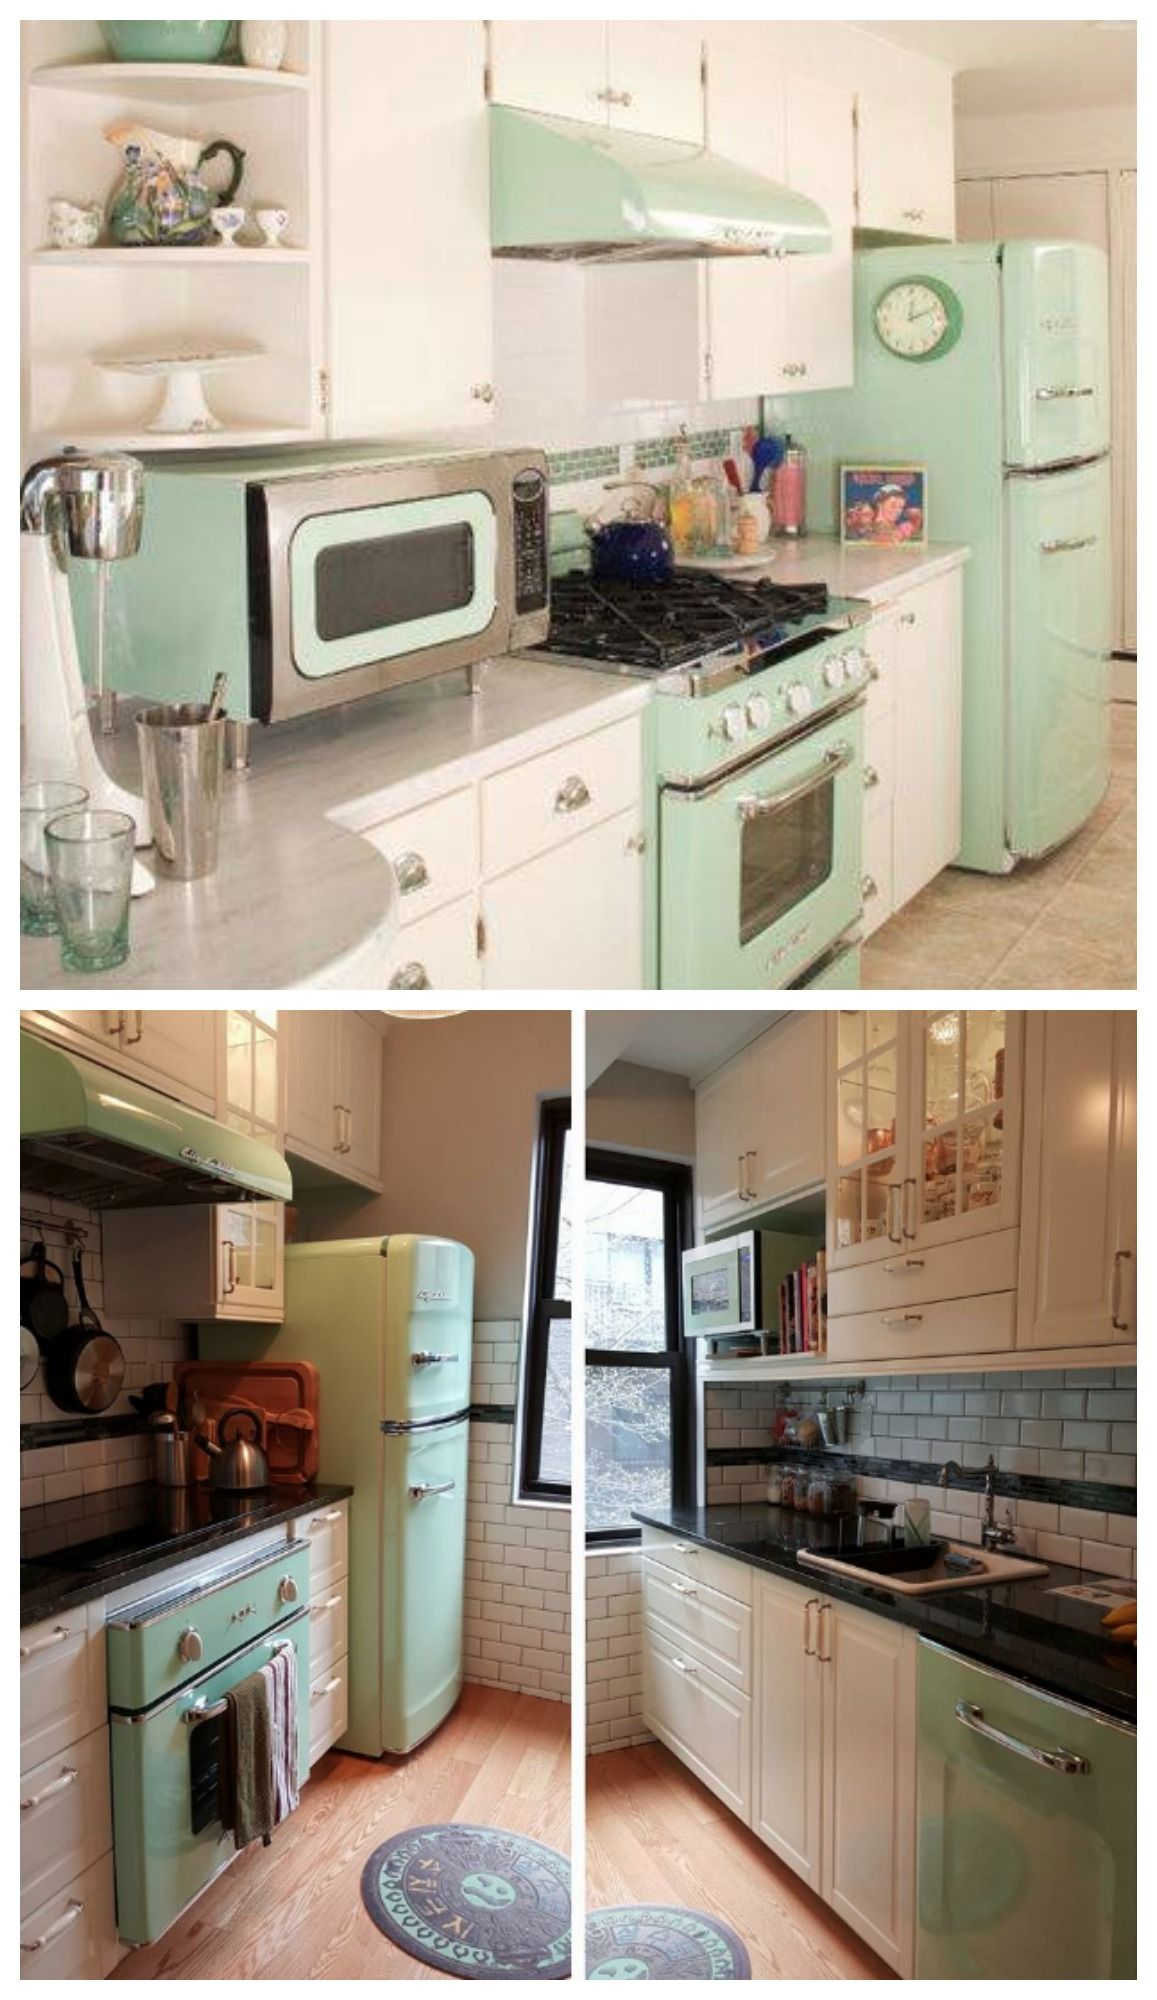 The Retro Kitchen Appliance Product Line Cheap Kitchen Cabinets